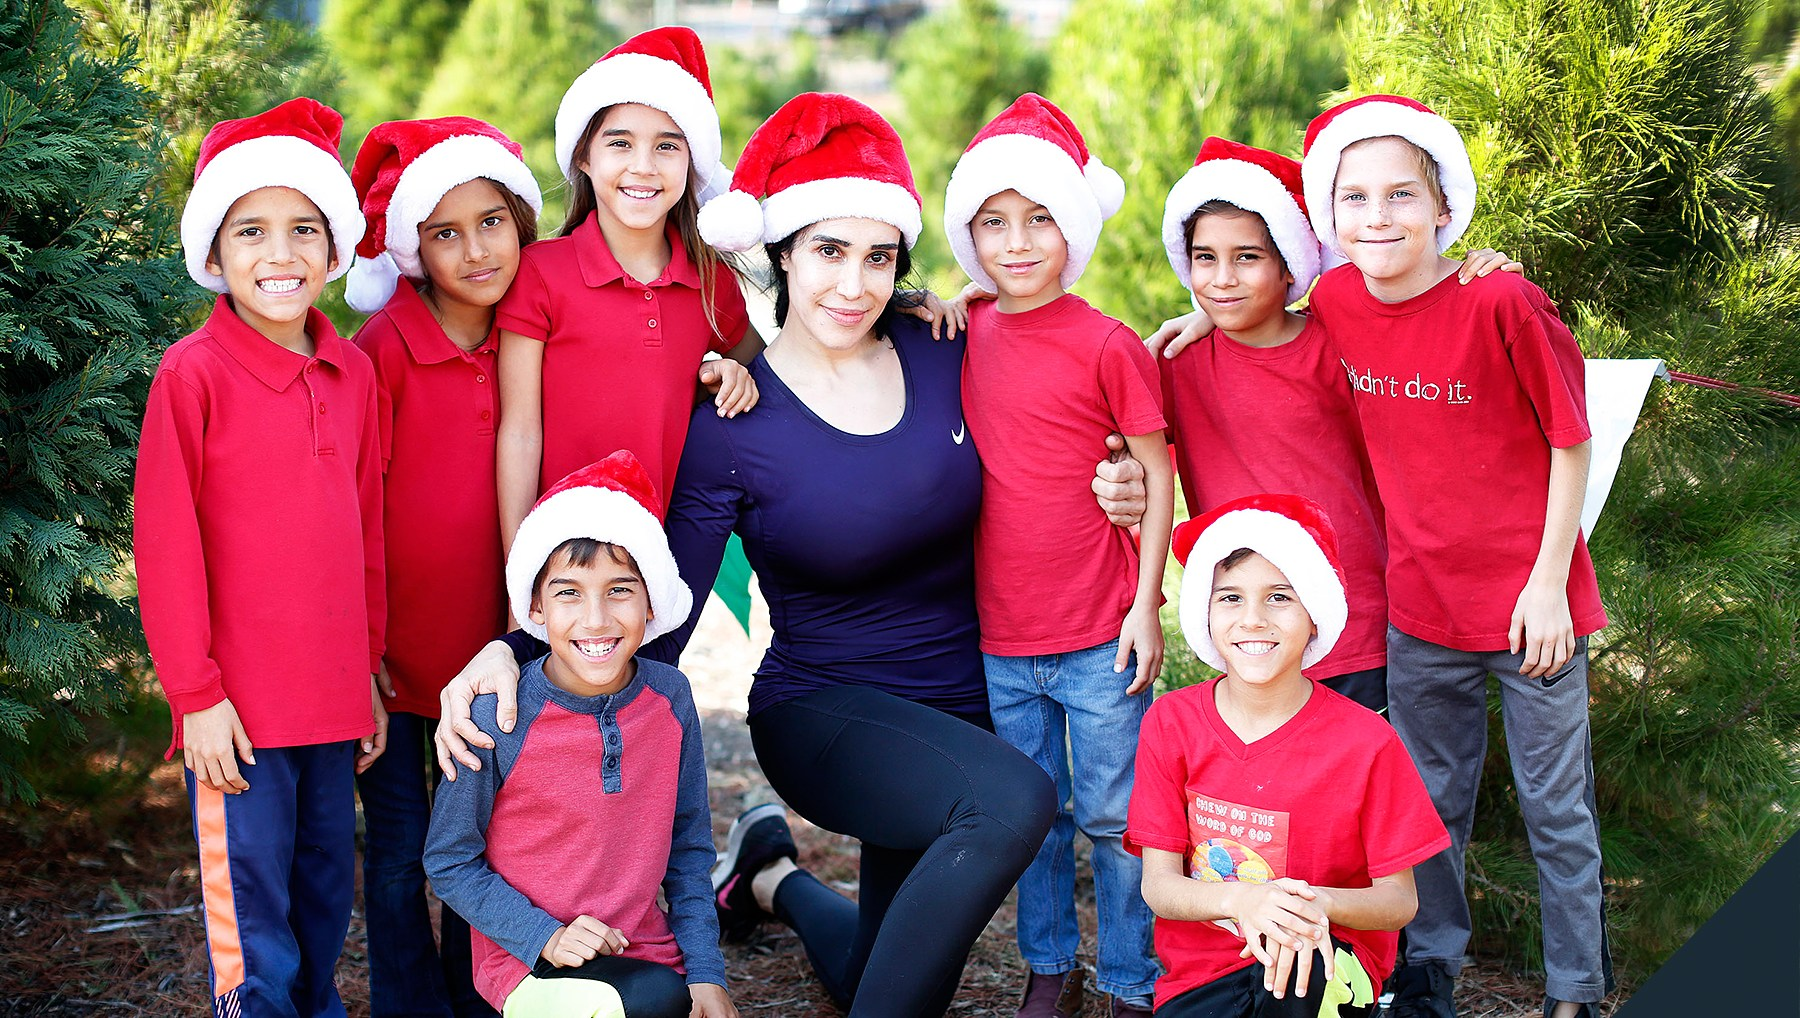 Natalie 'Octomom' Suleman takes her octuplets to shop for a Christmas tree near their home in Laguna Niguel, CA on December 17, 2017.